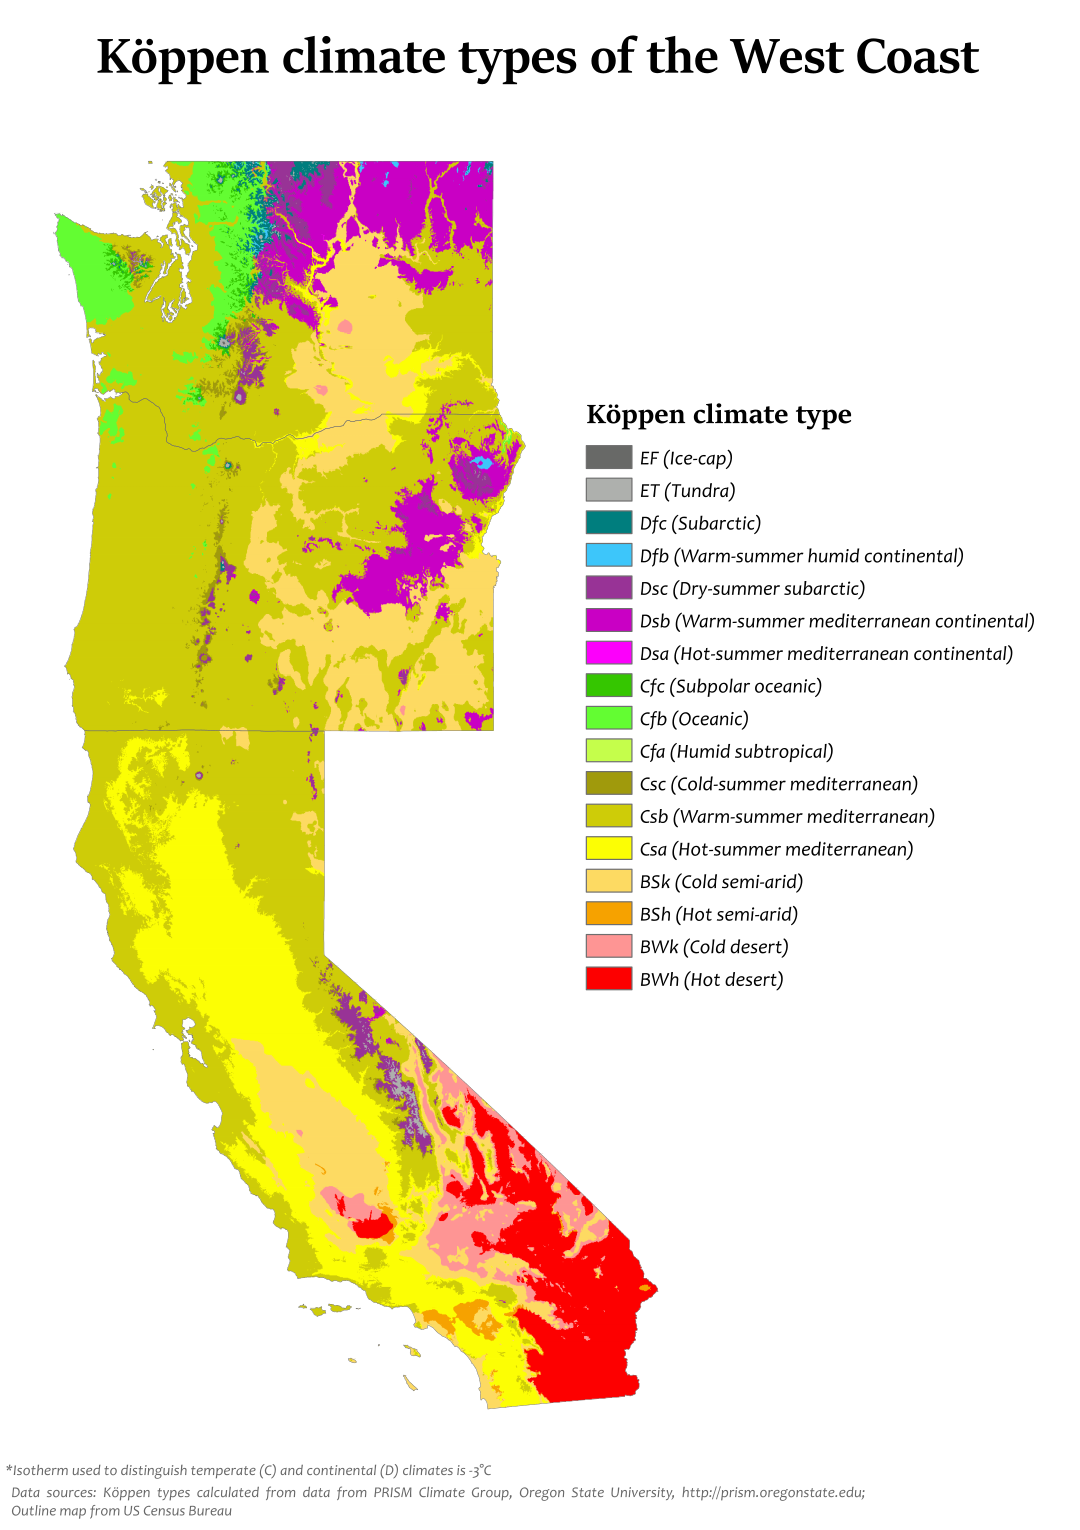 Köppen climate types of the US West Coast | maps | West coast ... on usa weather map, desert climate map, north africa climate map, average annual temperature map, climate zone map, temperate deciduous forest biome map, asia climate map, usa latitude map, world biome map, average temperature by state map, north america climate map, australia climate map, world climate map, indian climate map, united states agriculture map, united states time zone map, california biome map, trewartha climate map, subtropical climate map, middle east climate region map,